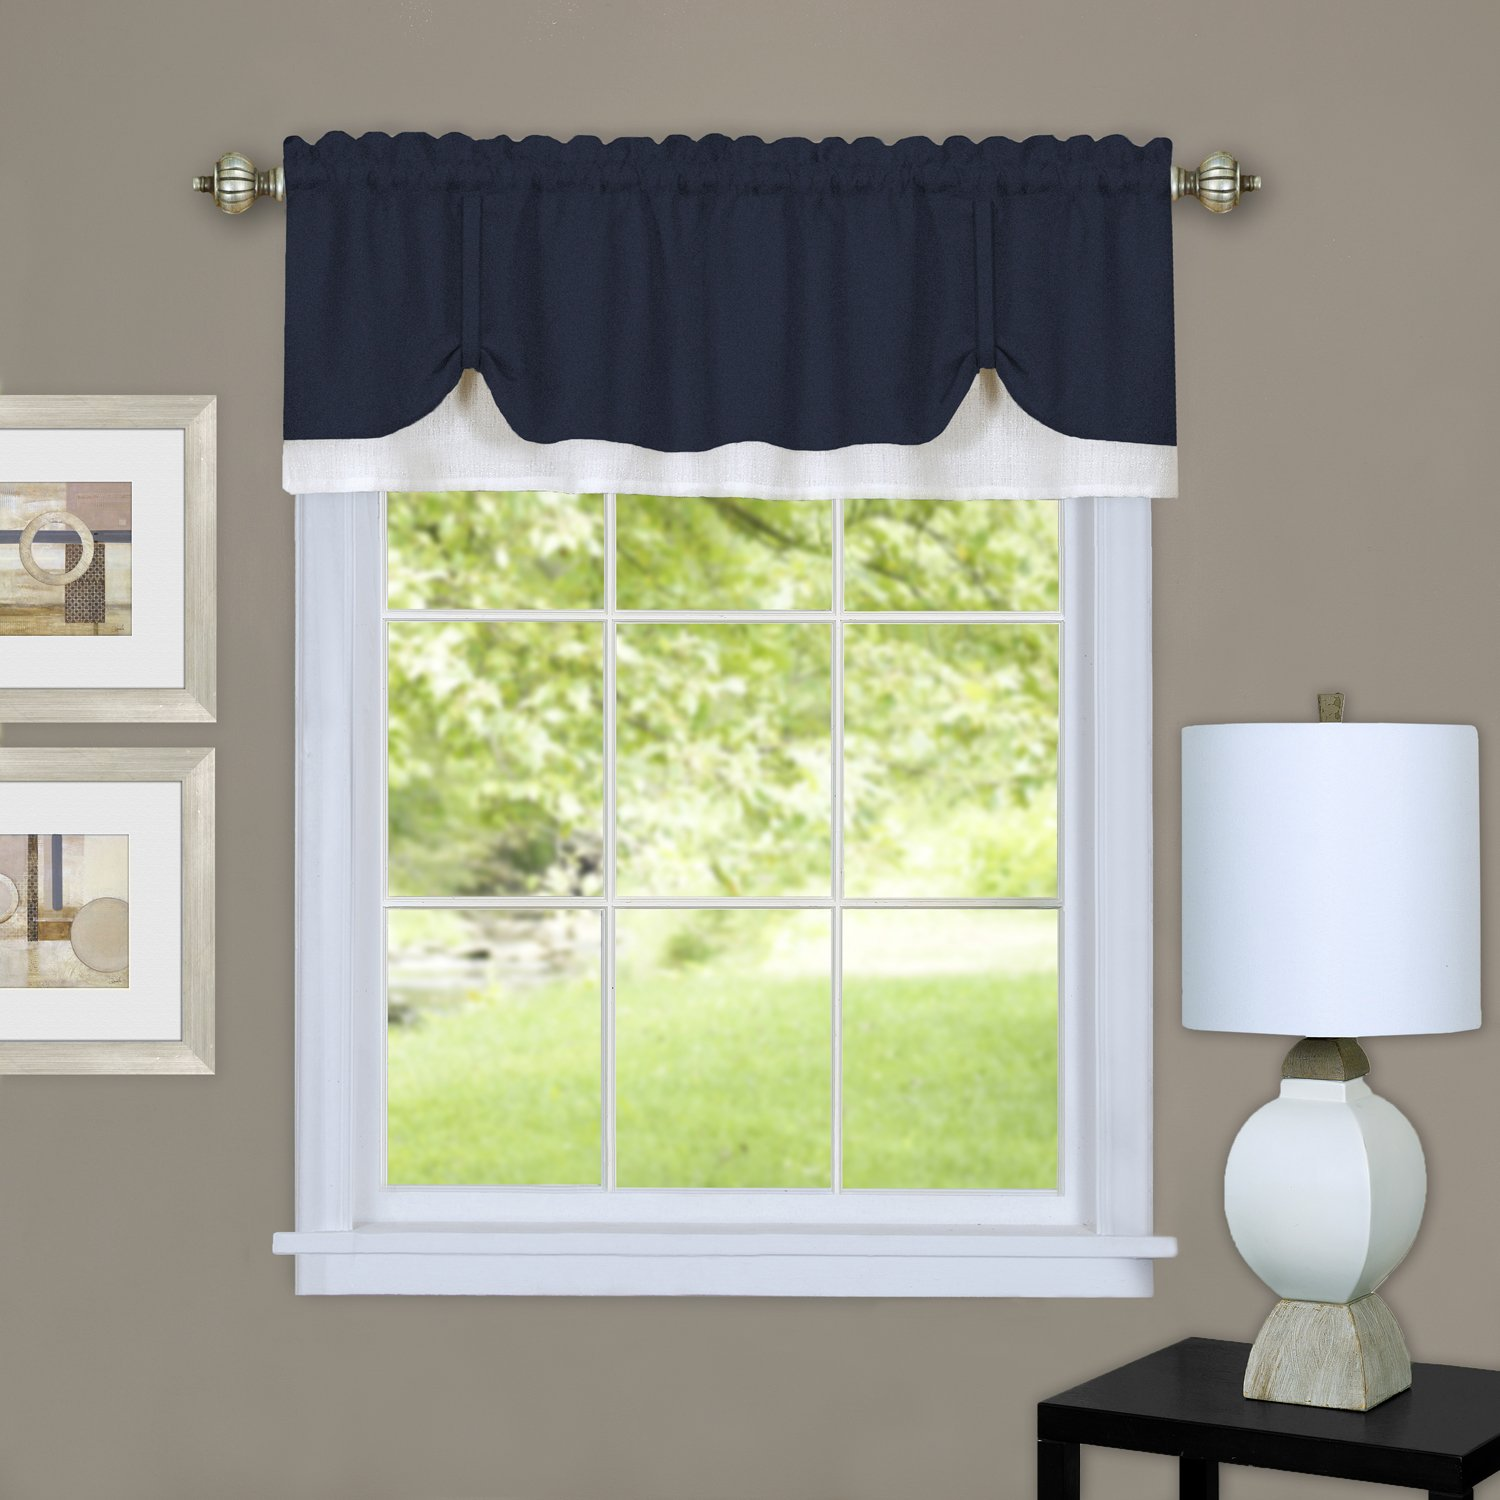 custom drapery valance phoenix curtains cornices az treatments img window top valances coverings